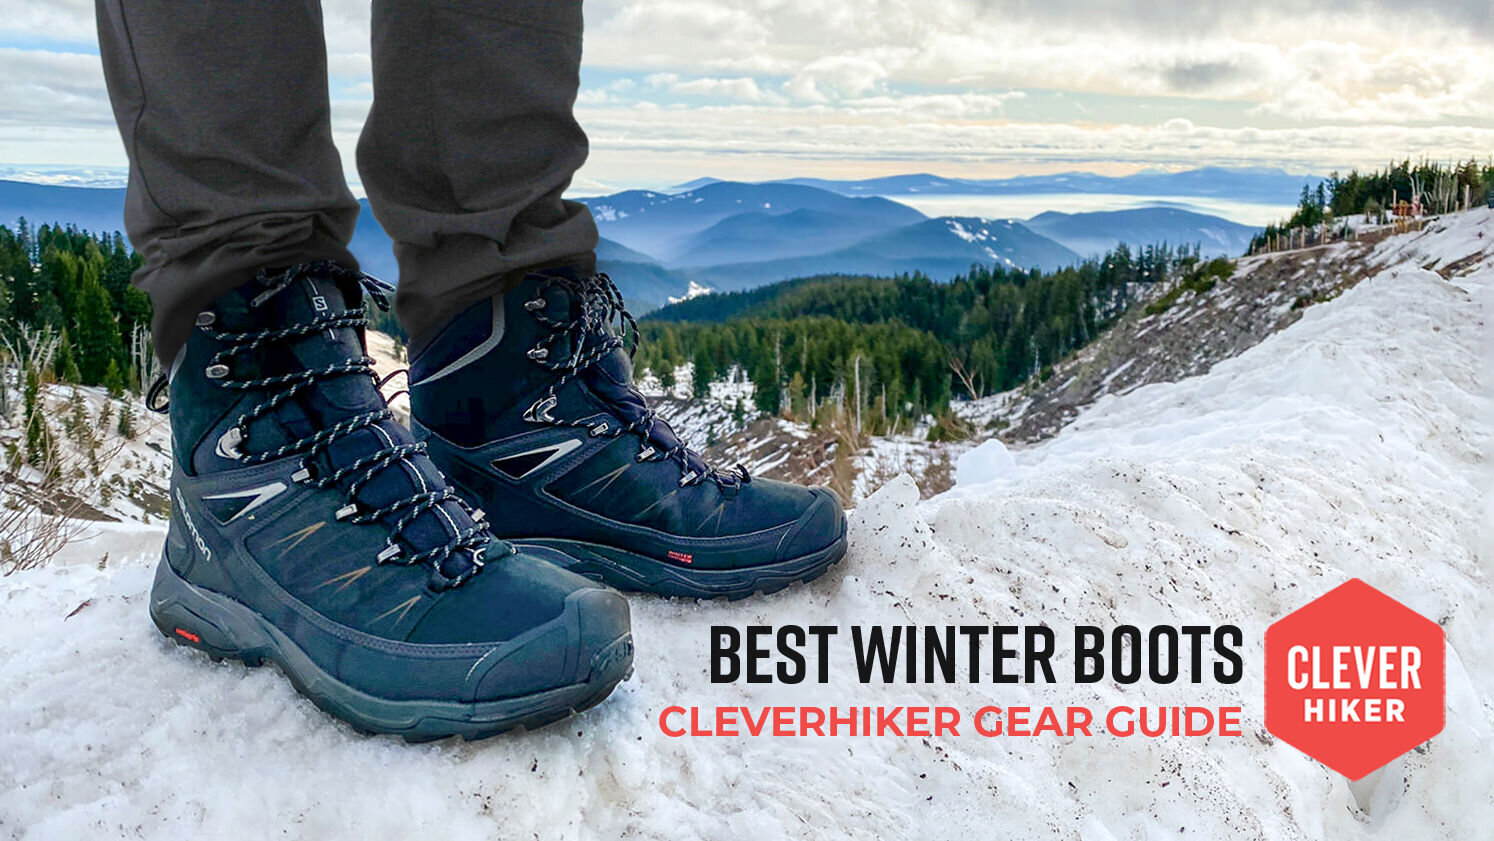 10 Best Winter Boots Of 2021 Cleverhiker